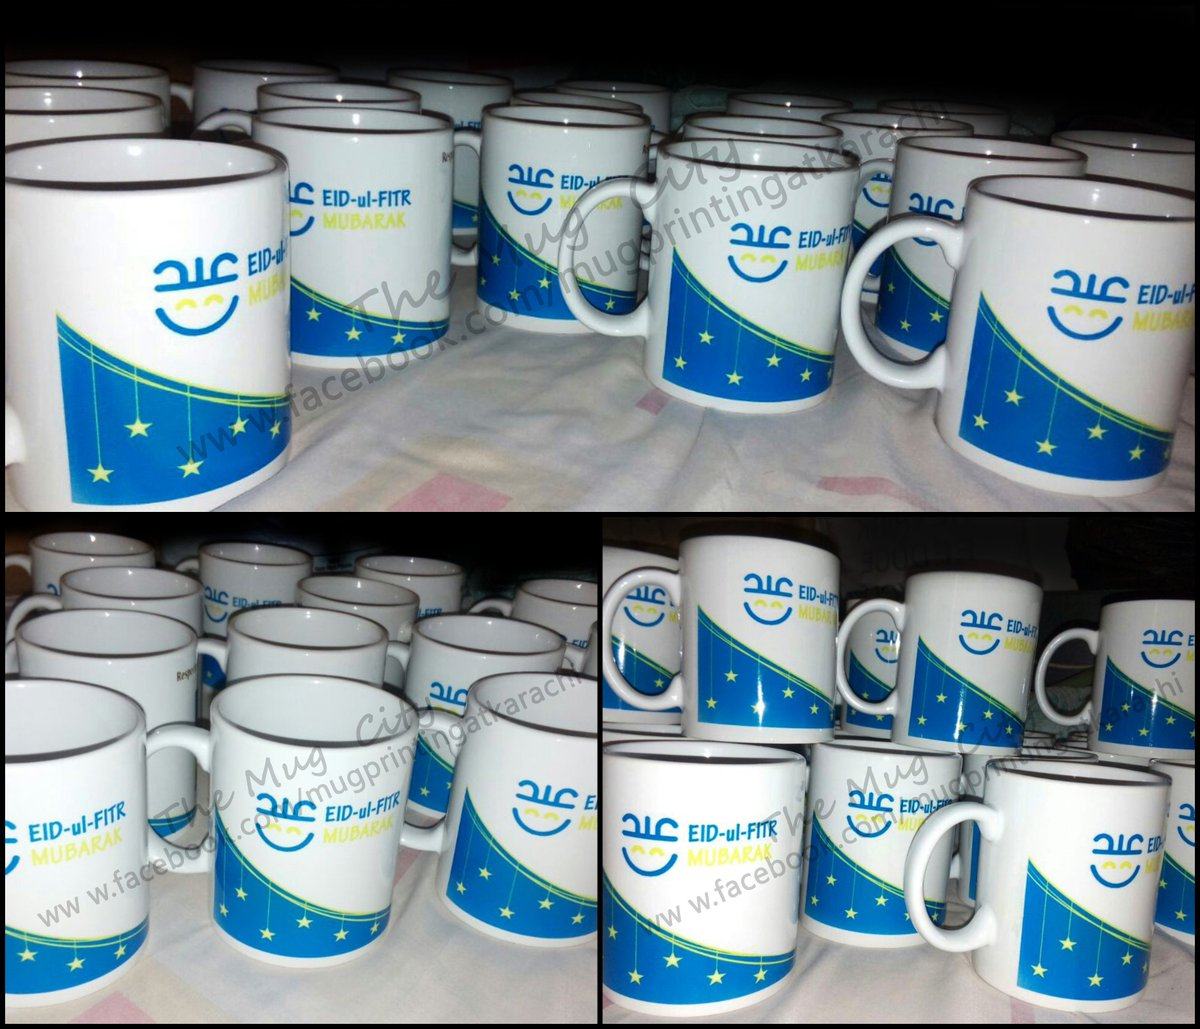 Customize Eid Mubarak Mugs Choose from a variety of personalized gifts that are made to suit your gifting needs. Best Price | High Quality Printing | Nationwide Delivery Call/WhatsApp for Order : 0341-2638116 #mugcity #mugprintingkarachi #Eidmubarak #customizeprinting pic.twitter.com/McITDGBNDa